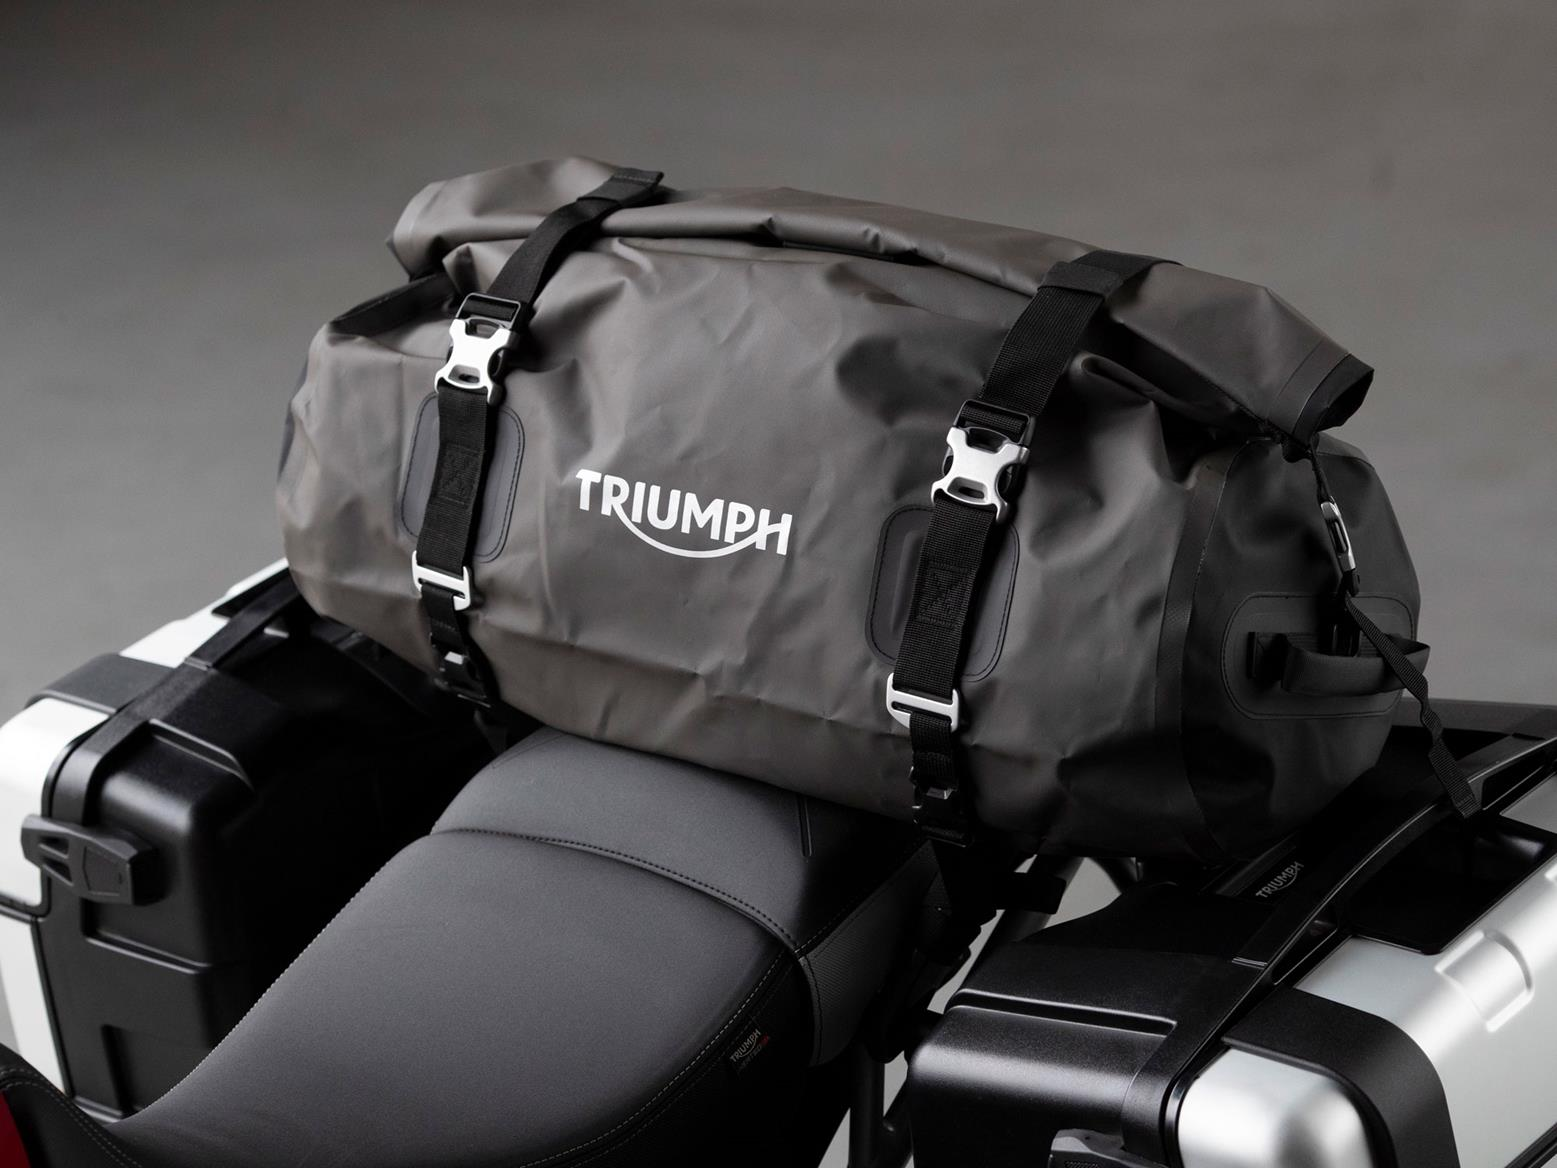 Triumph Tiger 900 GT Pro paniers and top bag